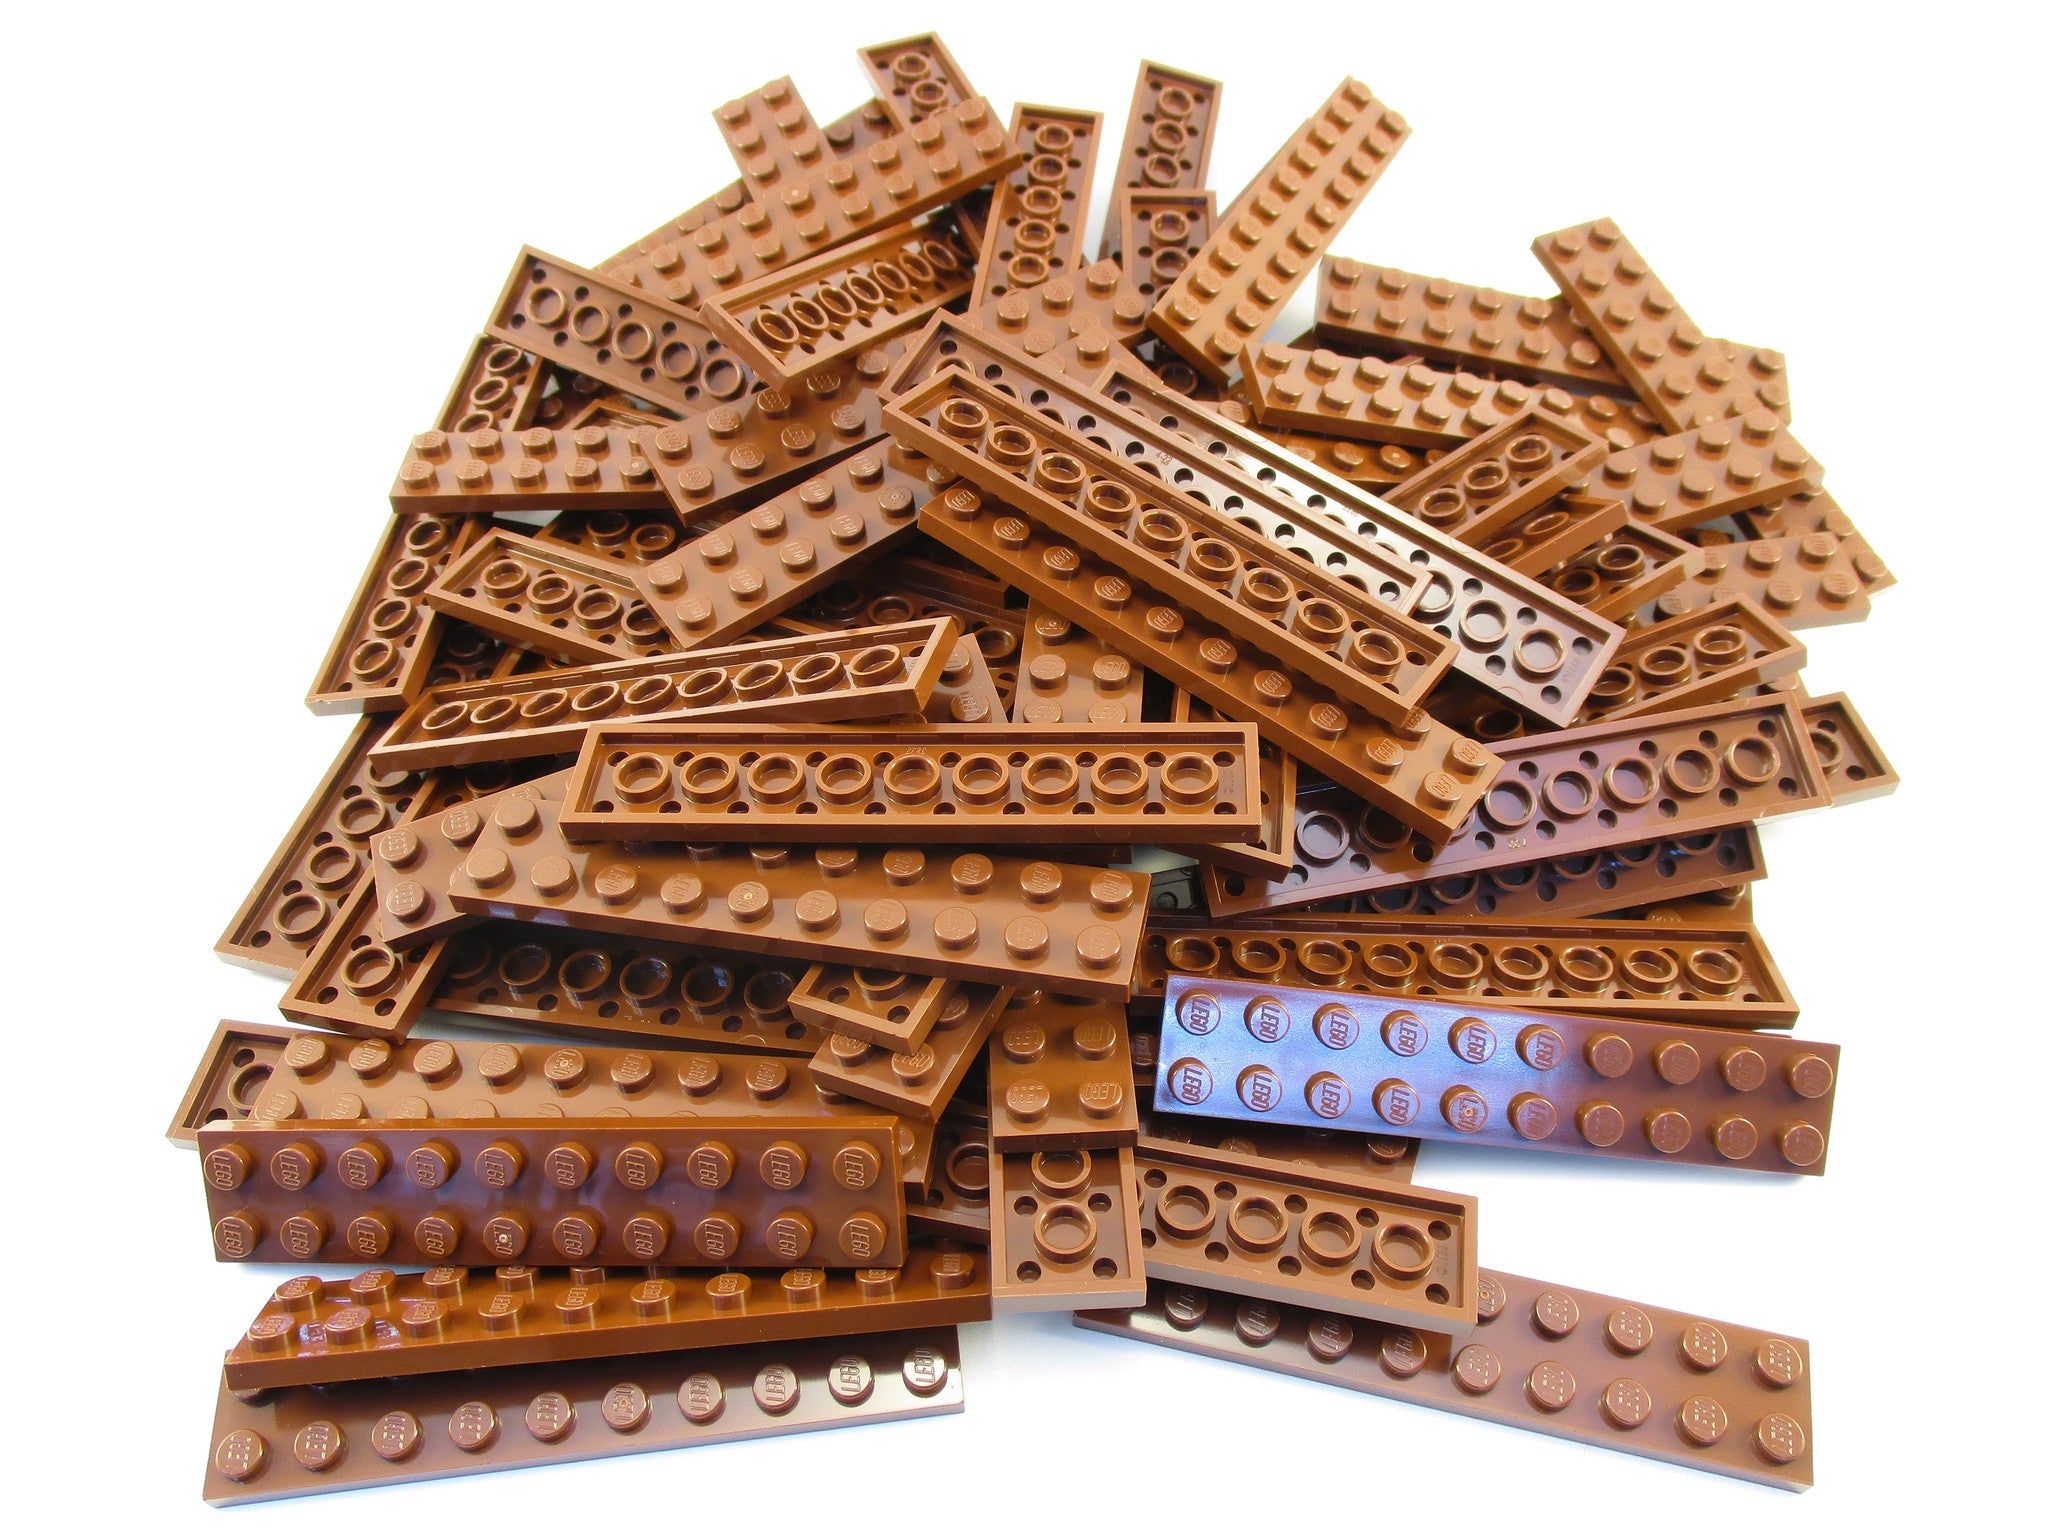 LEGO Reddish Brown Plate 2x10 Lot of 50 Parts Pieces 3832